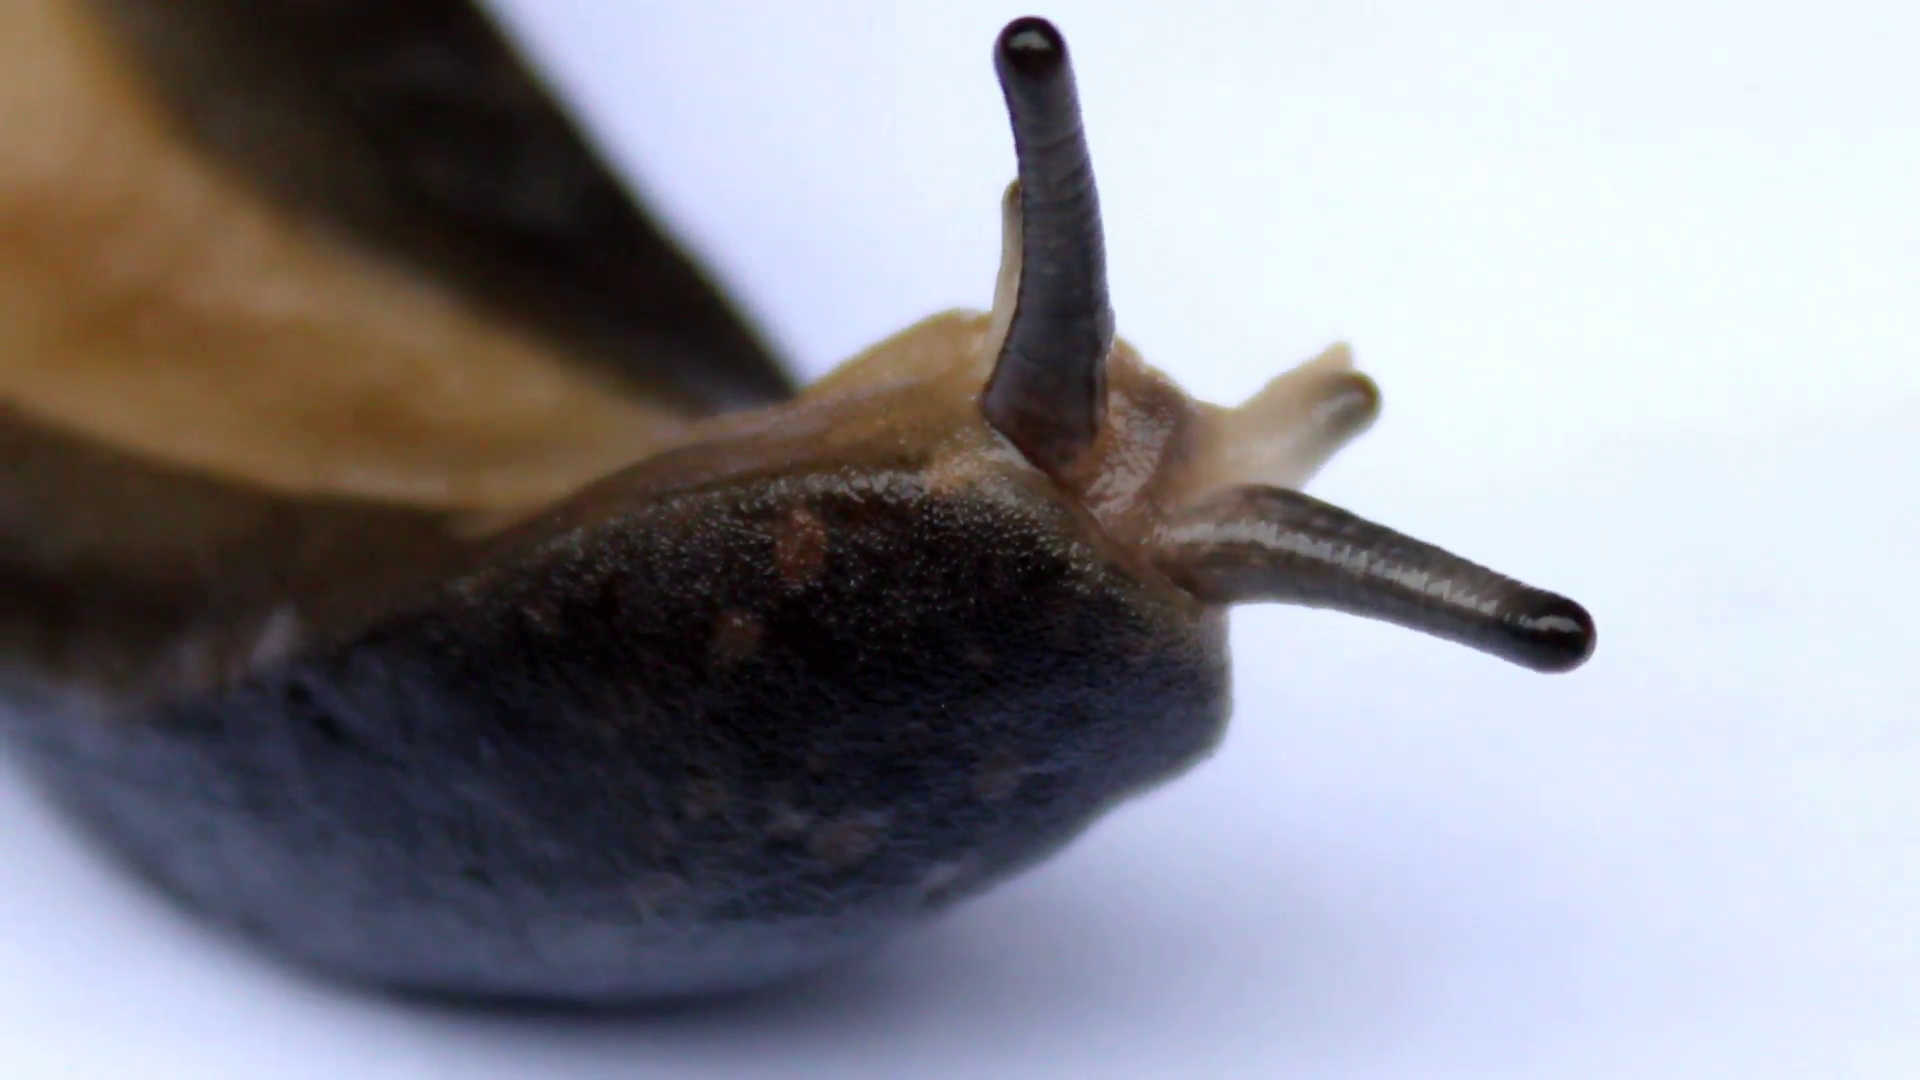 Snails: Characteristics, properties, types and more